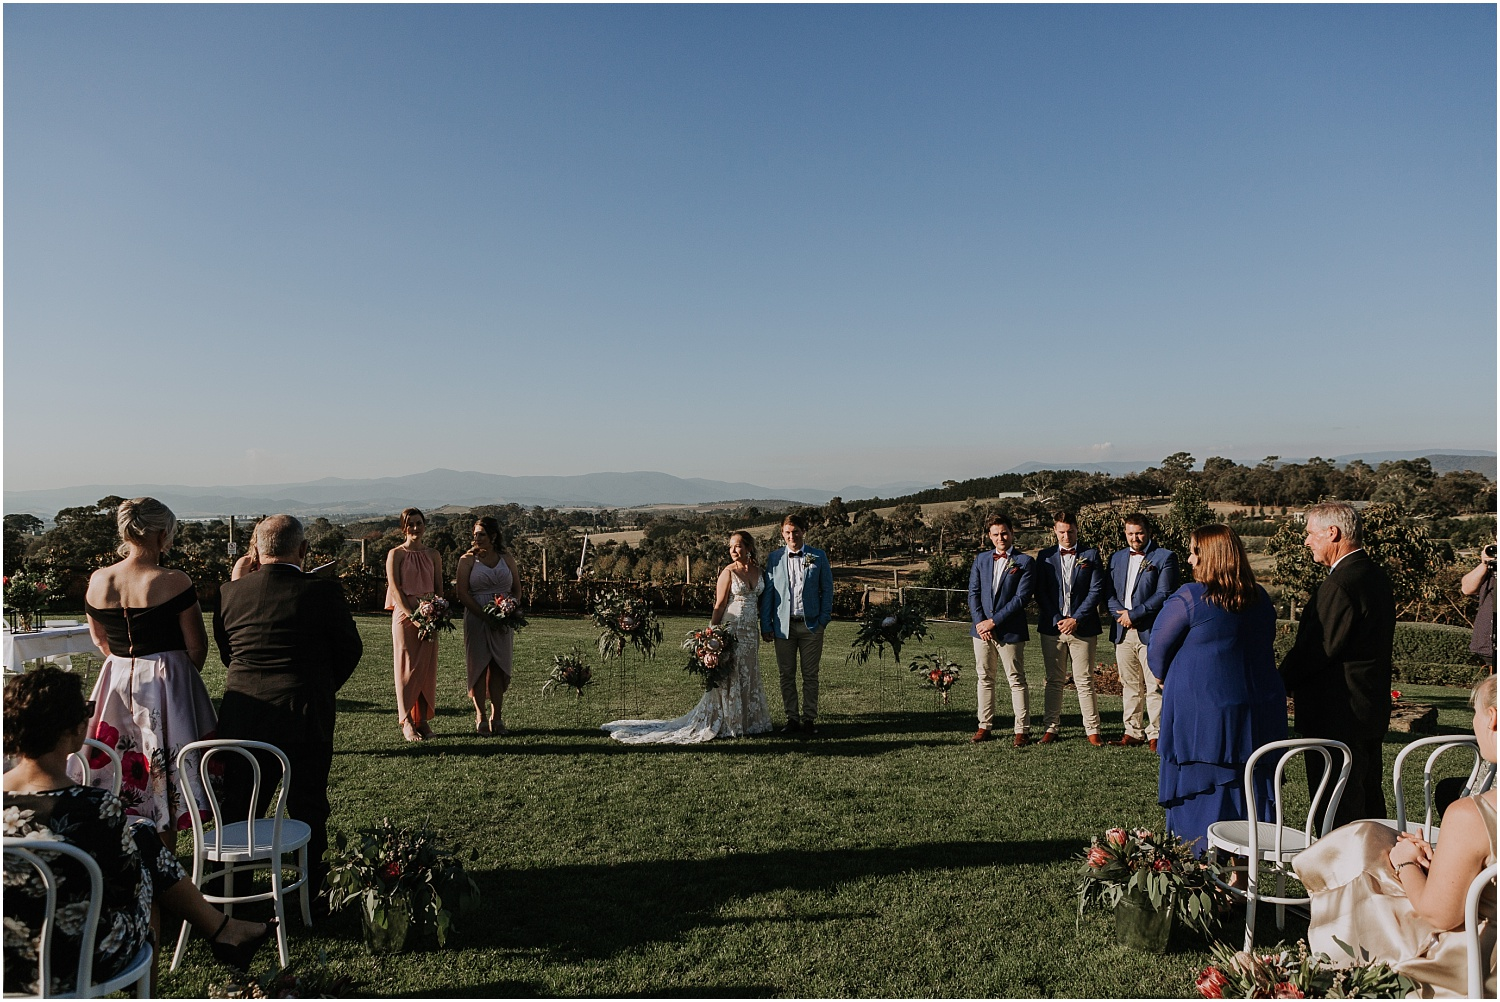 Lacey and Warwick's Yarra Valley winery wedding at Vines Helens Hill._0043.jpg